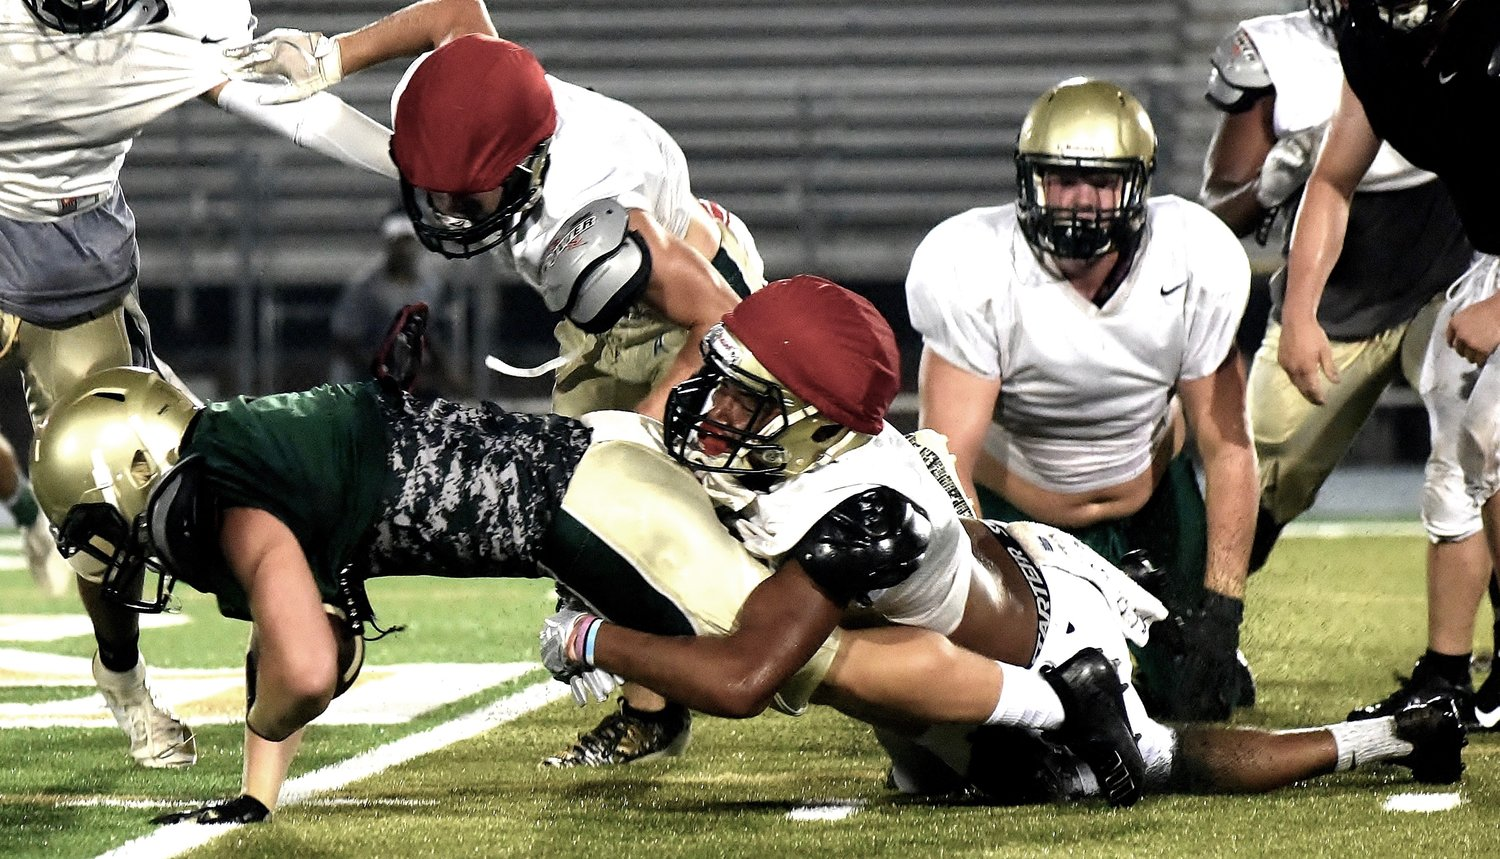 Adairsville football players swarm to the ball to make a tackle during a practice on Aug. 1. Adairsville hosts Woodland in a preseason scrimmage at 7:30 p.m. Friday.